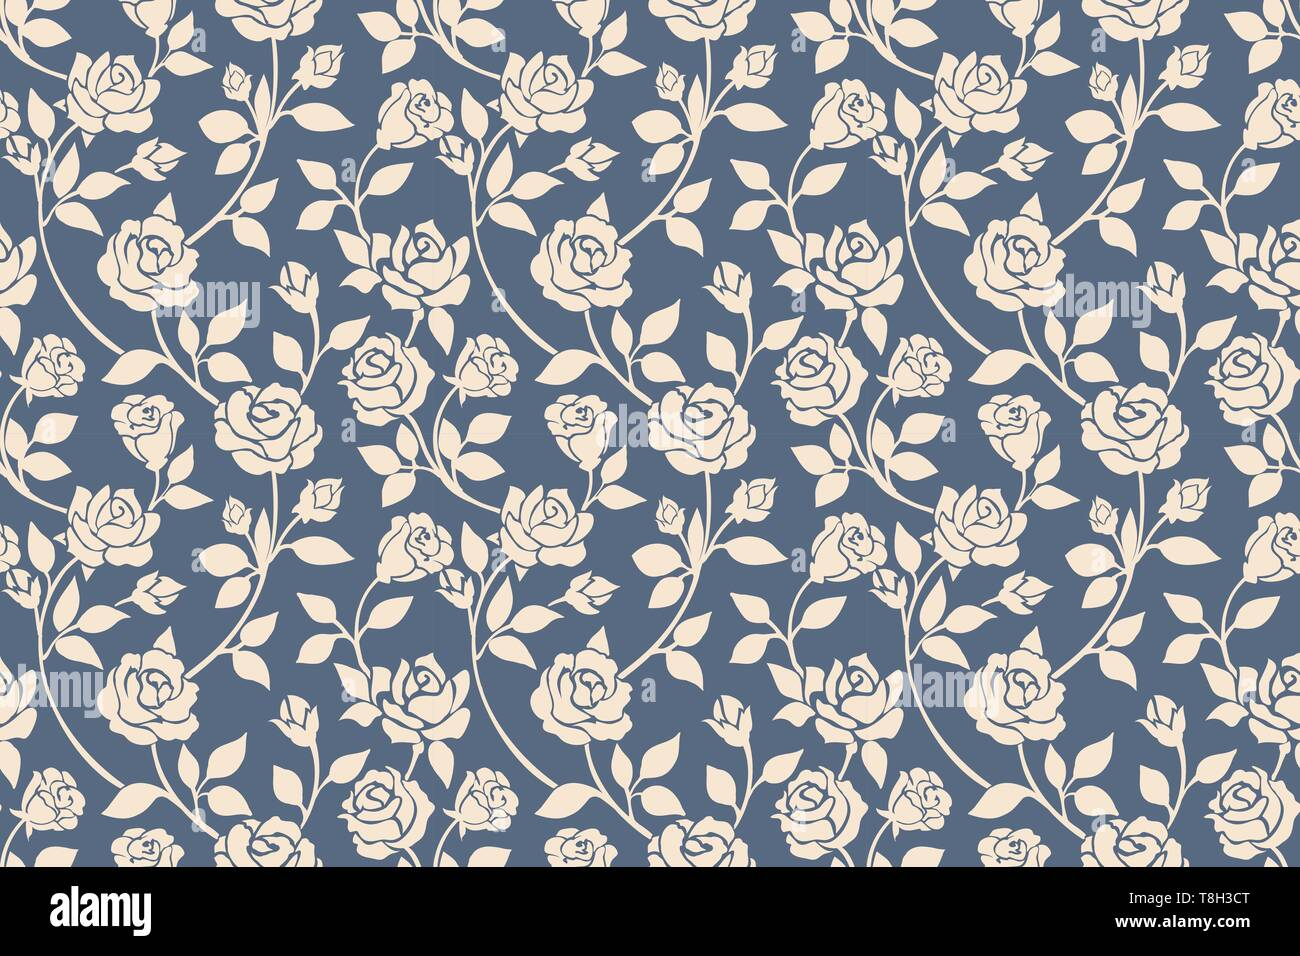 Blue Roses Floral Seamless Pattern Drawing Beige Roses Flowers On